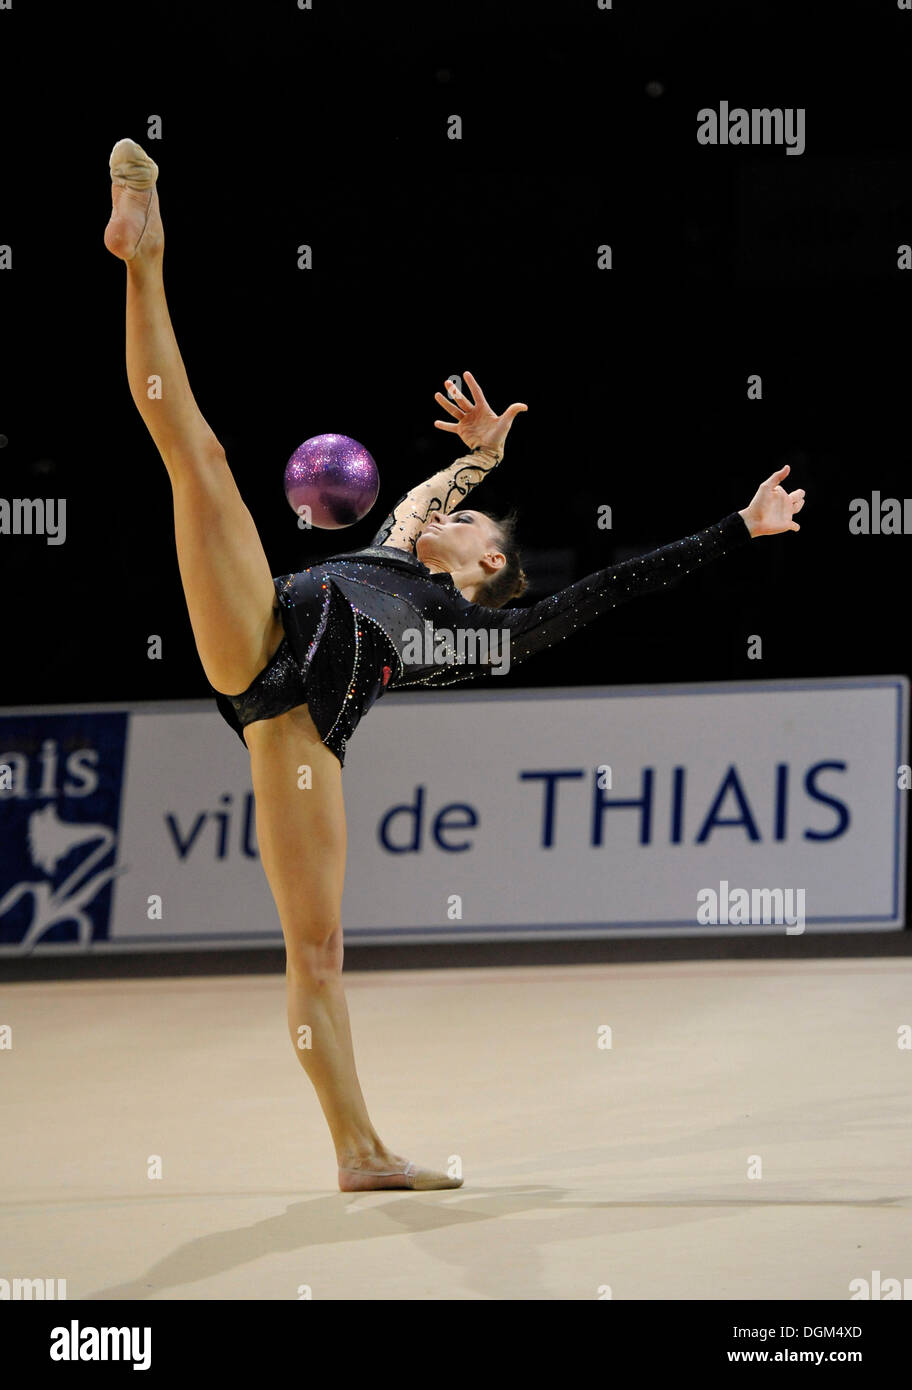 Delphine LEDOUX, FRA, with ball, rhythmic gymnastics, Grand Prix Thiais, 09. - 10.04.2011, Paris, France, Europe - Stock Image